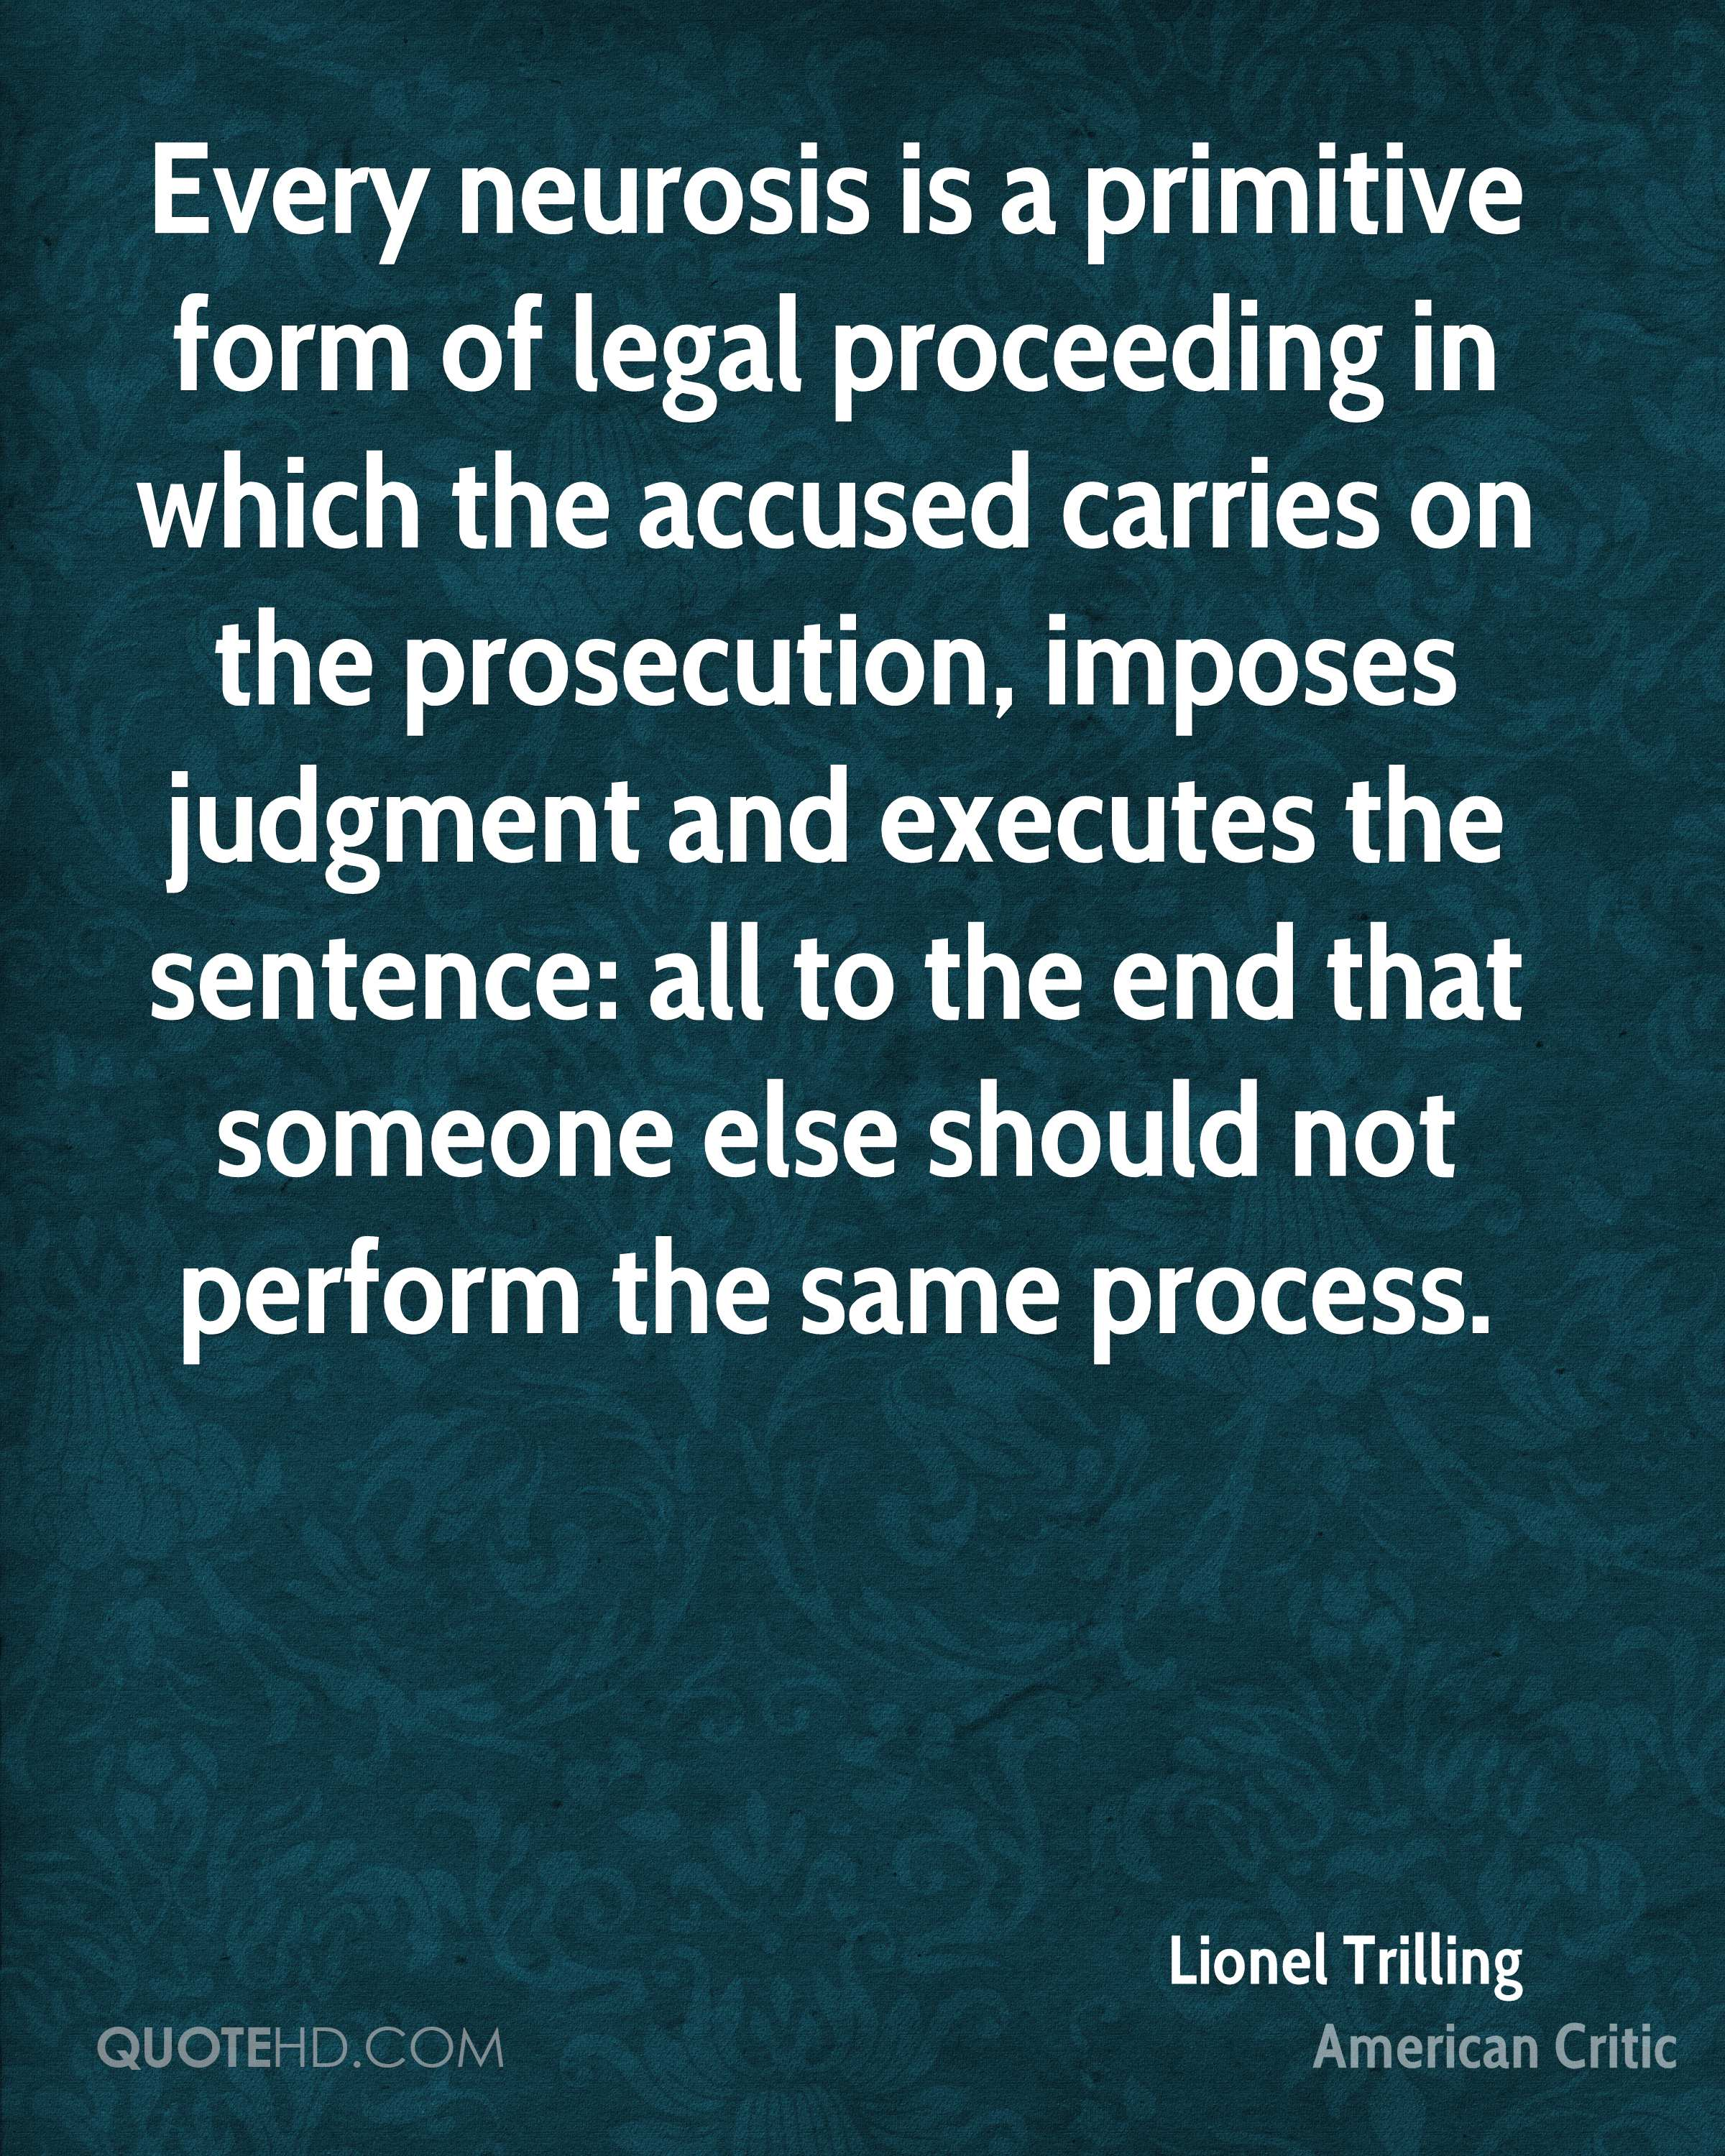 Every neurosis is a primitive form of legal proceeding in which the accused carries on the prosecution, imposes judgment and executes the sentence: all to the end that someone else should not perform the same process.